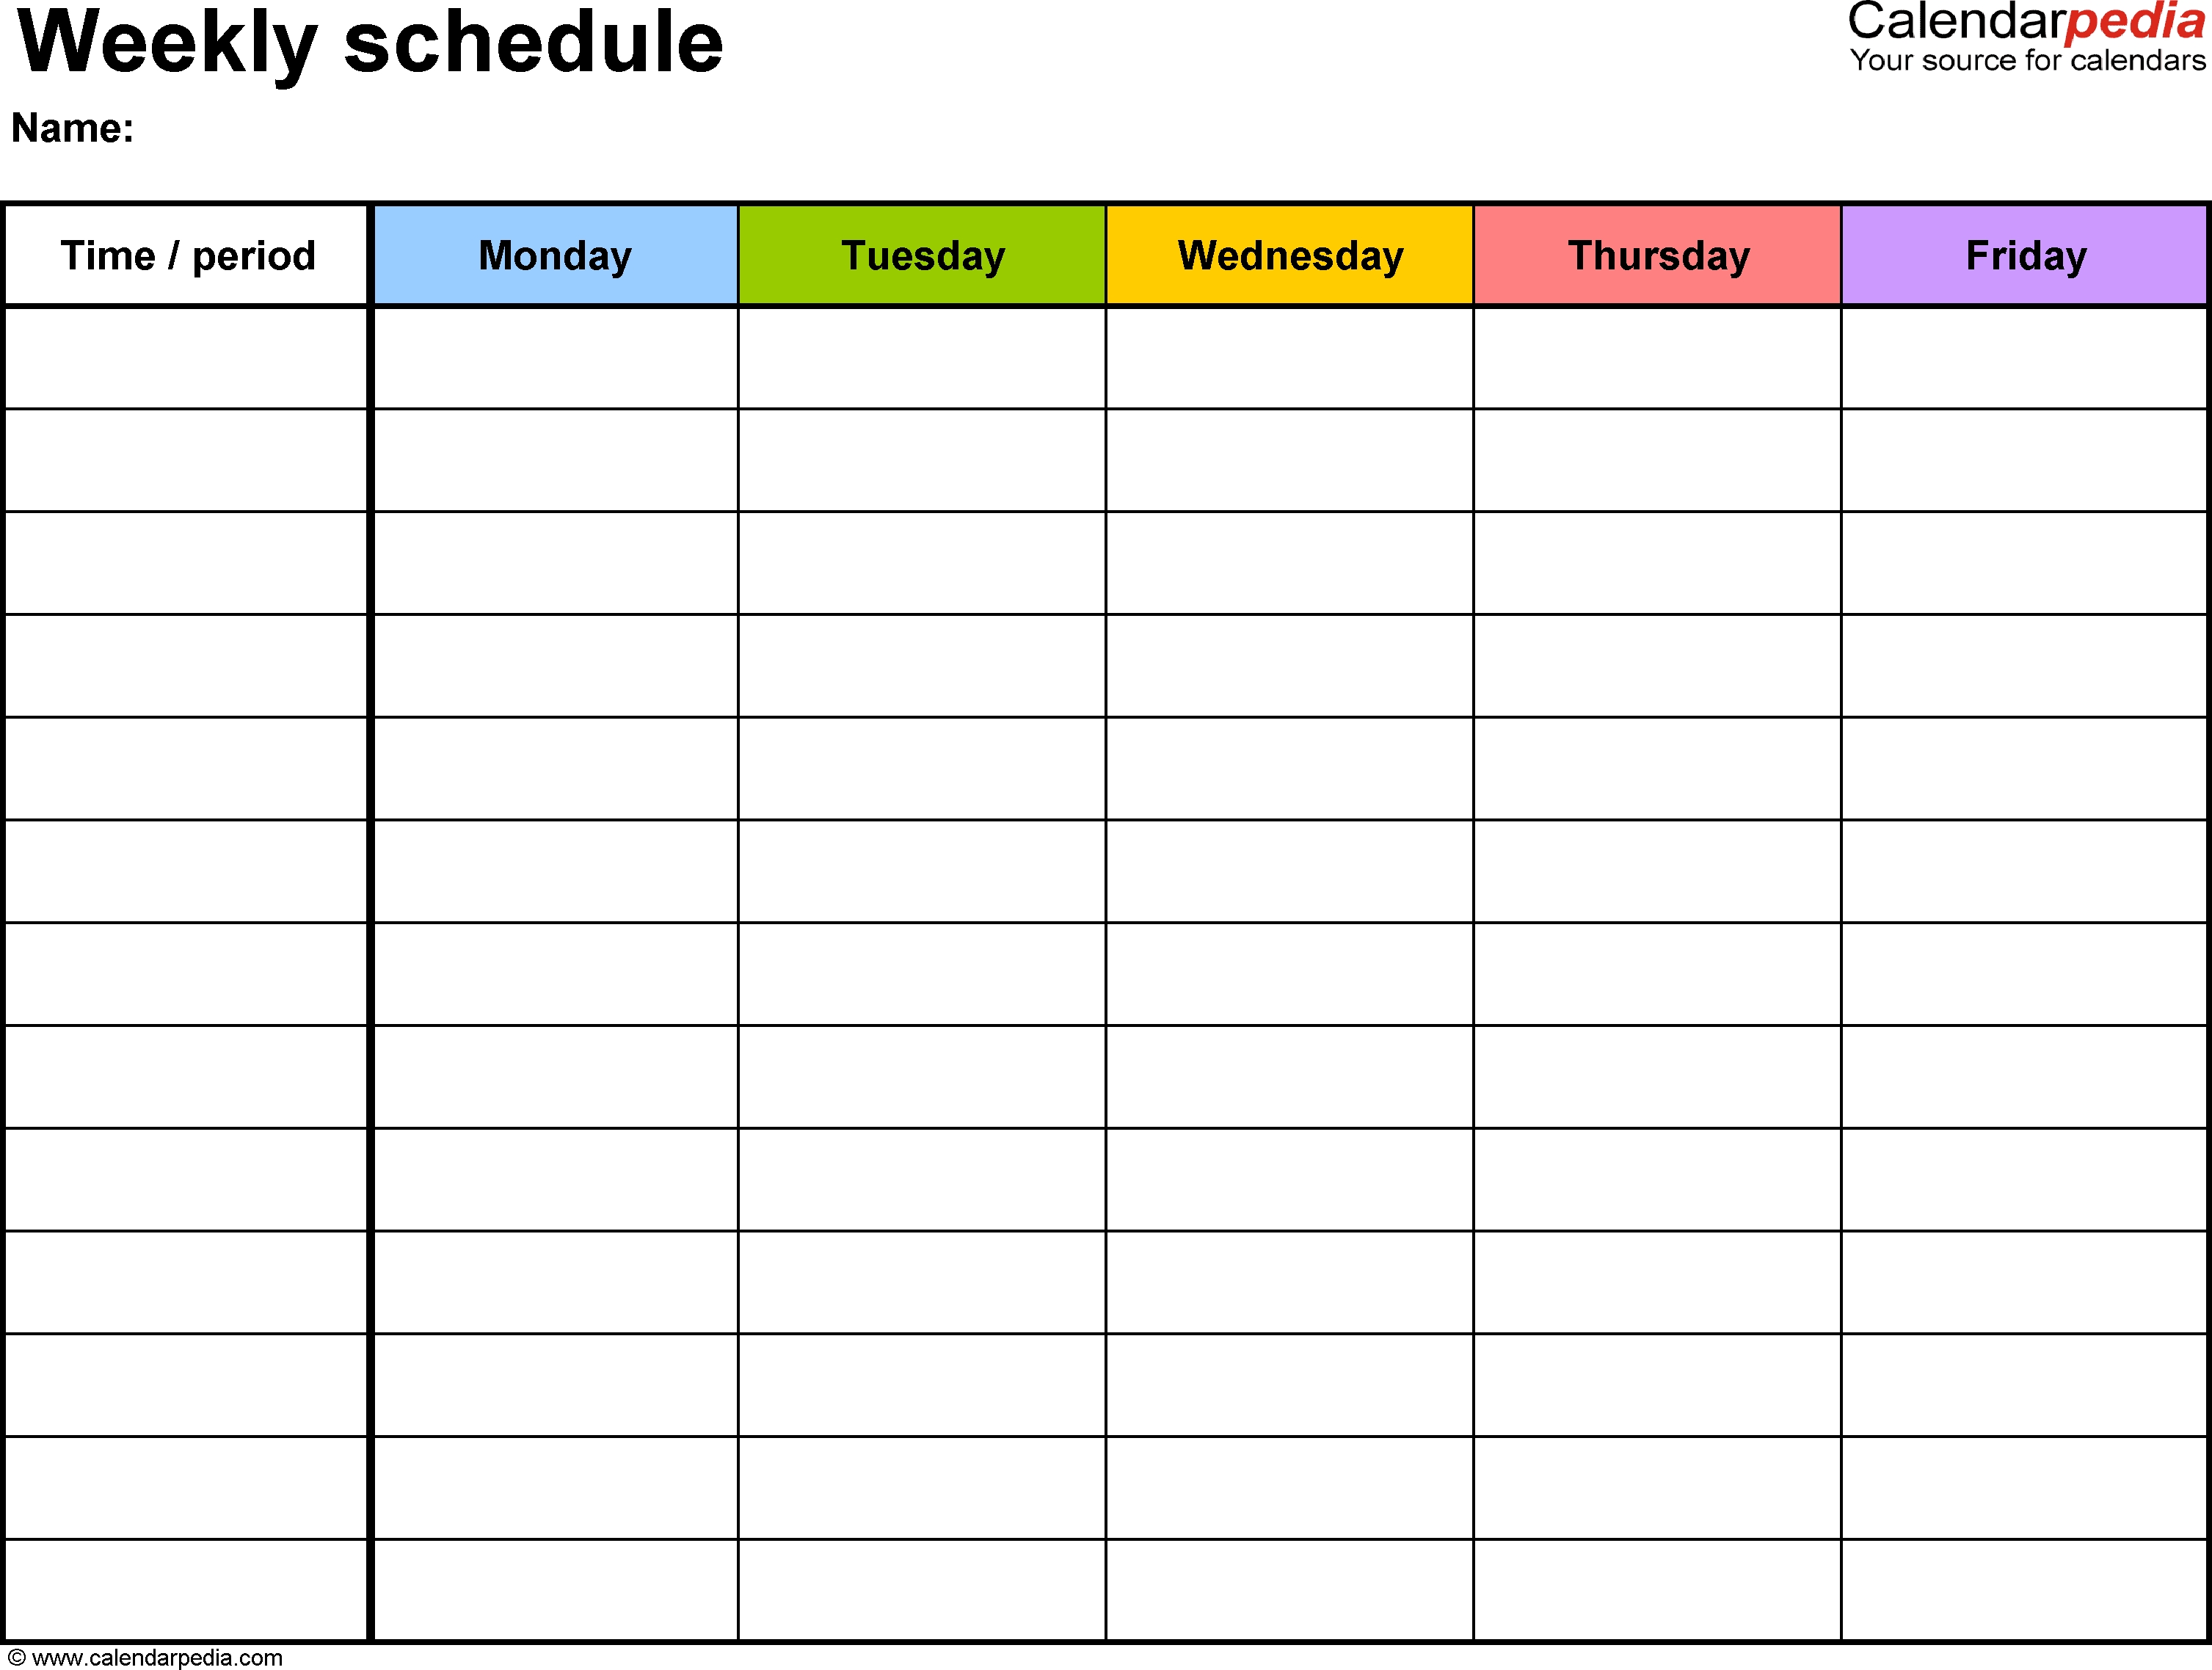 Free Weekly Schedule Templates For Word - 18 Templates within 5 Day Blank Calendar Template